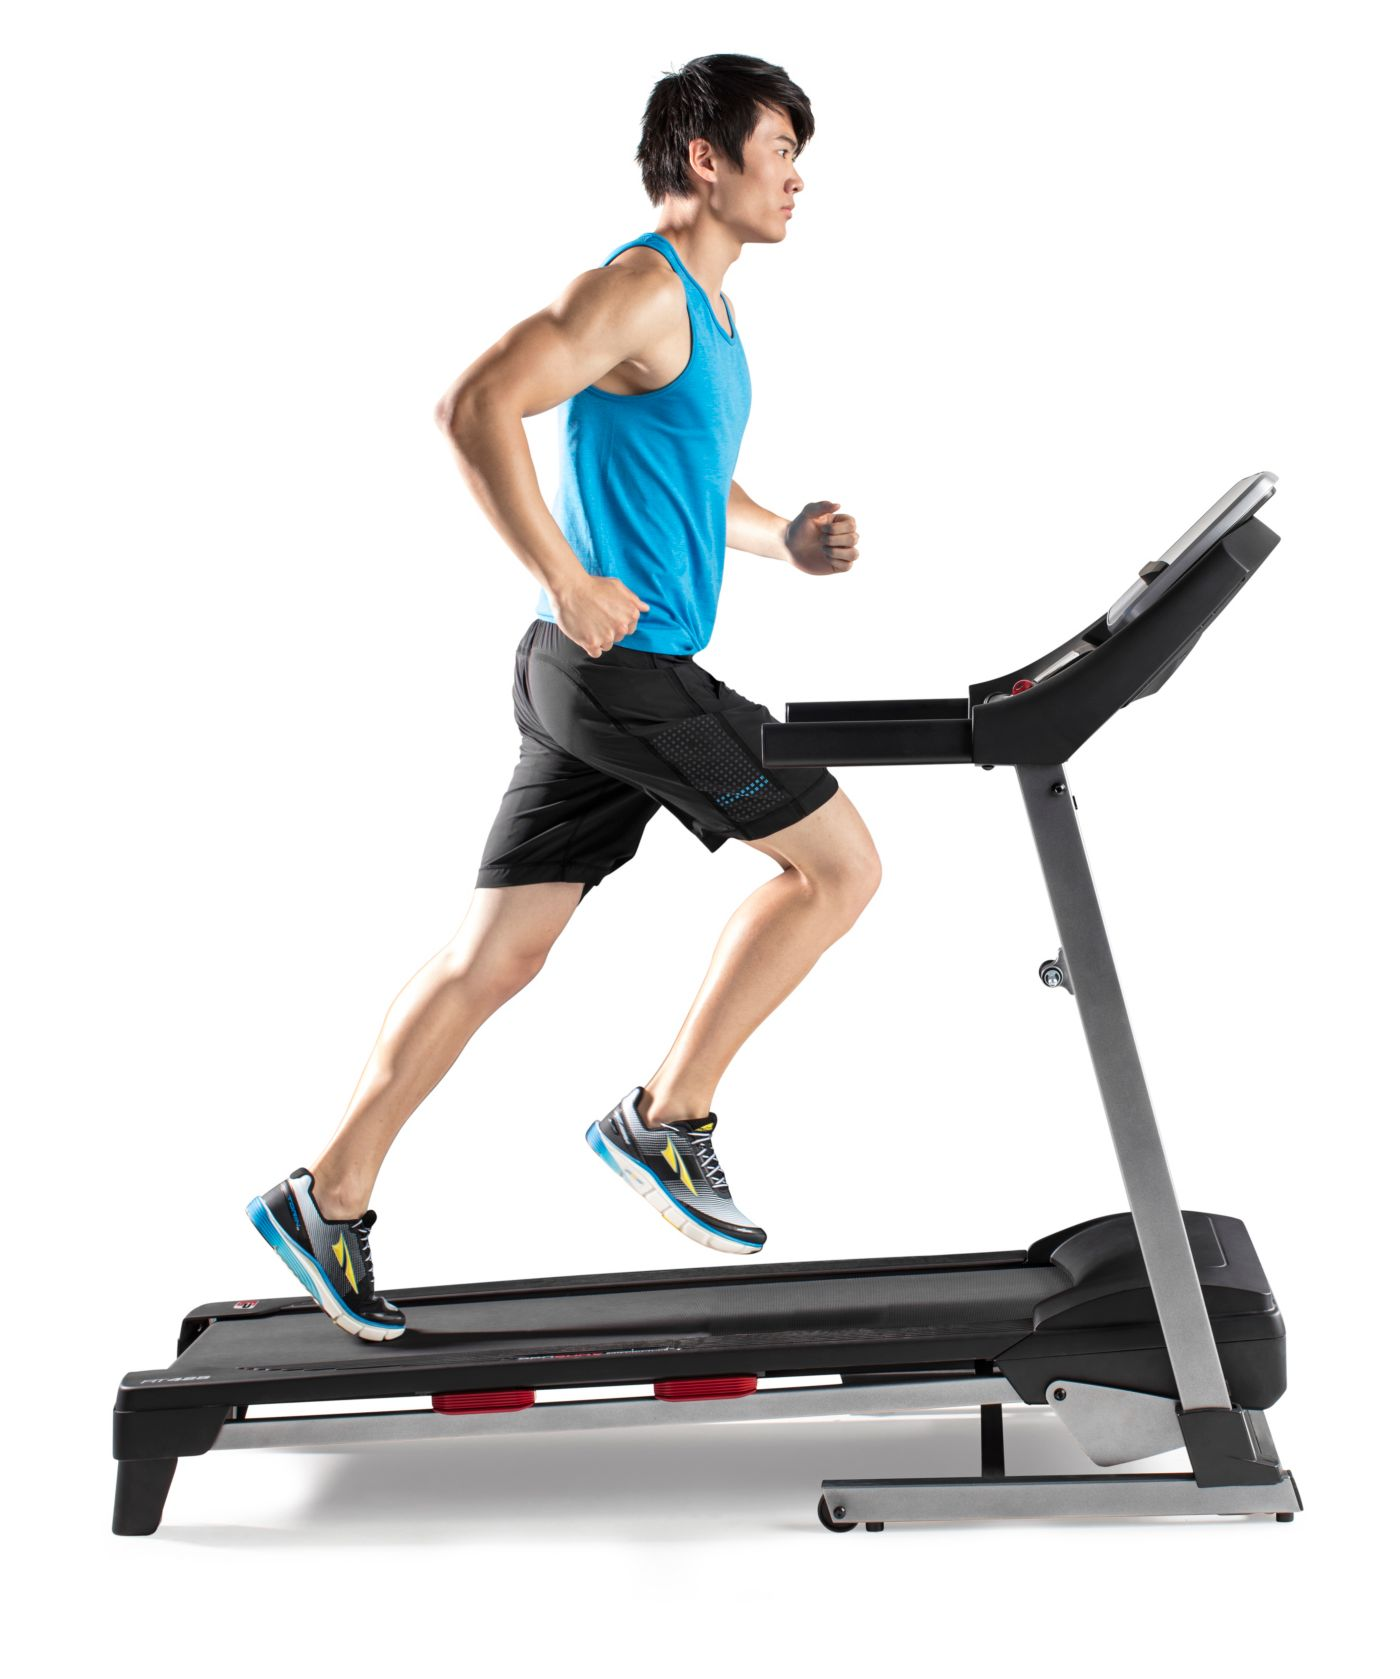 ProForm Fit 425 Treadmill